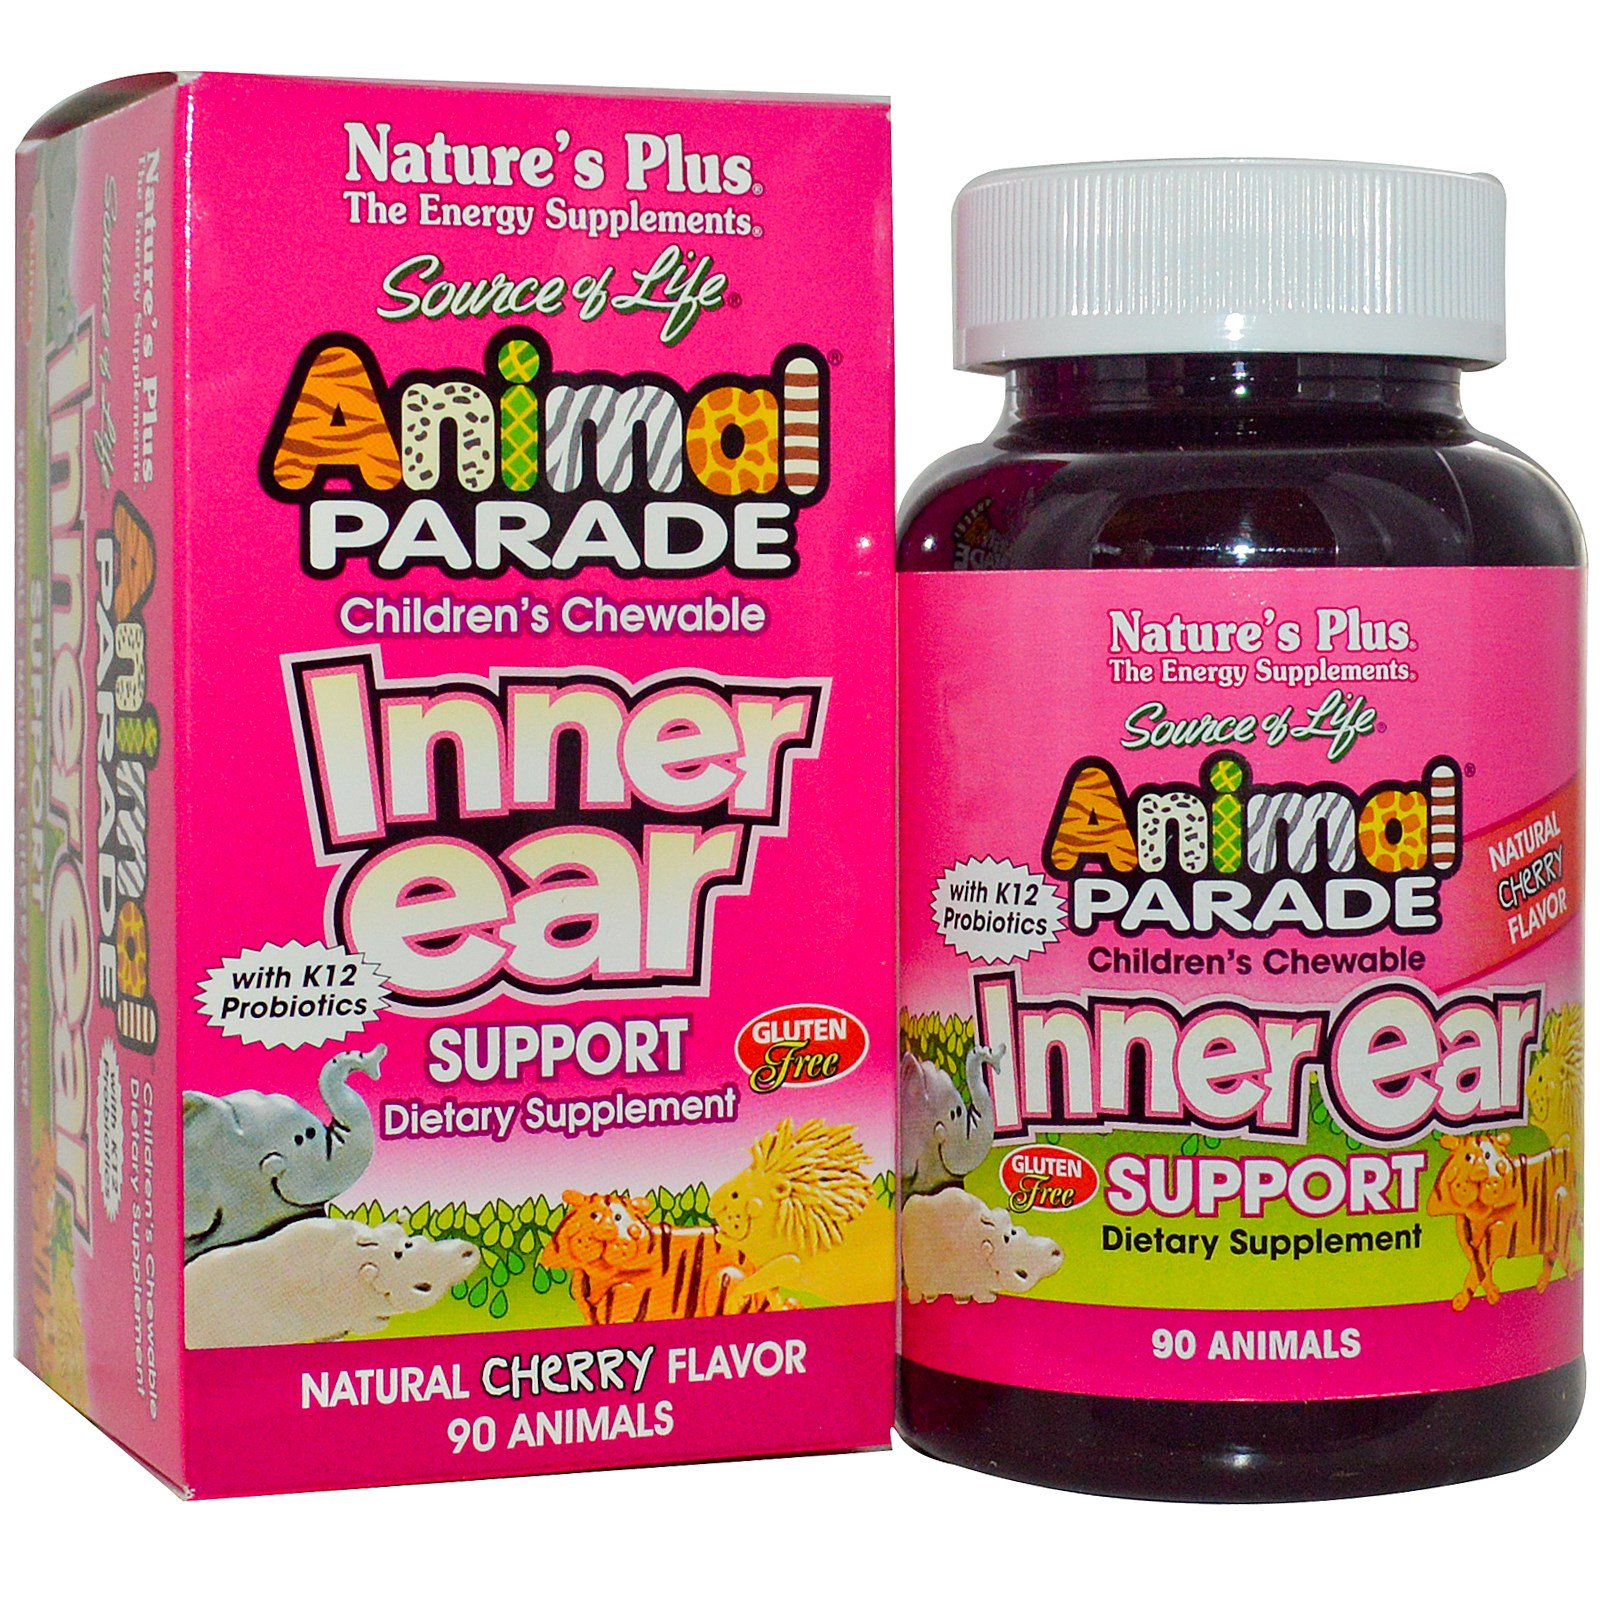 Children apos s Chewable Inner Ear Support, Natural Cherry Flavor (90 Animals) Nature apos s Plus